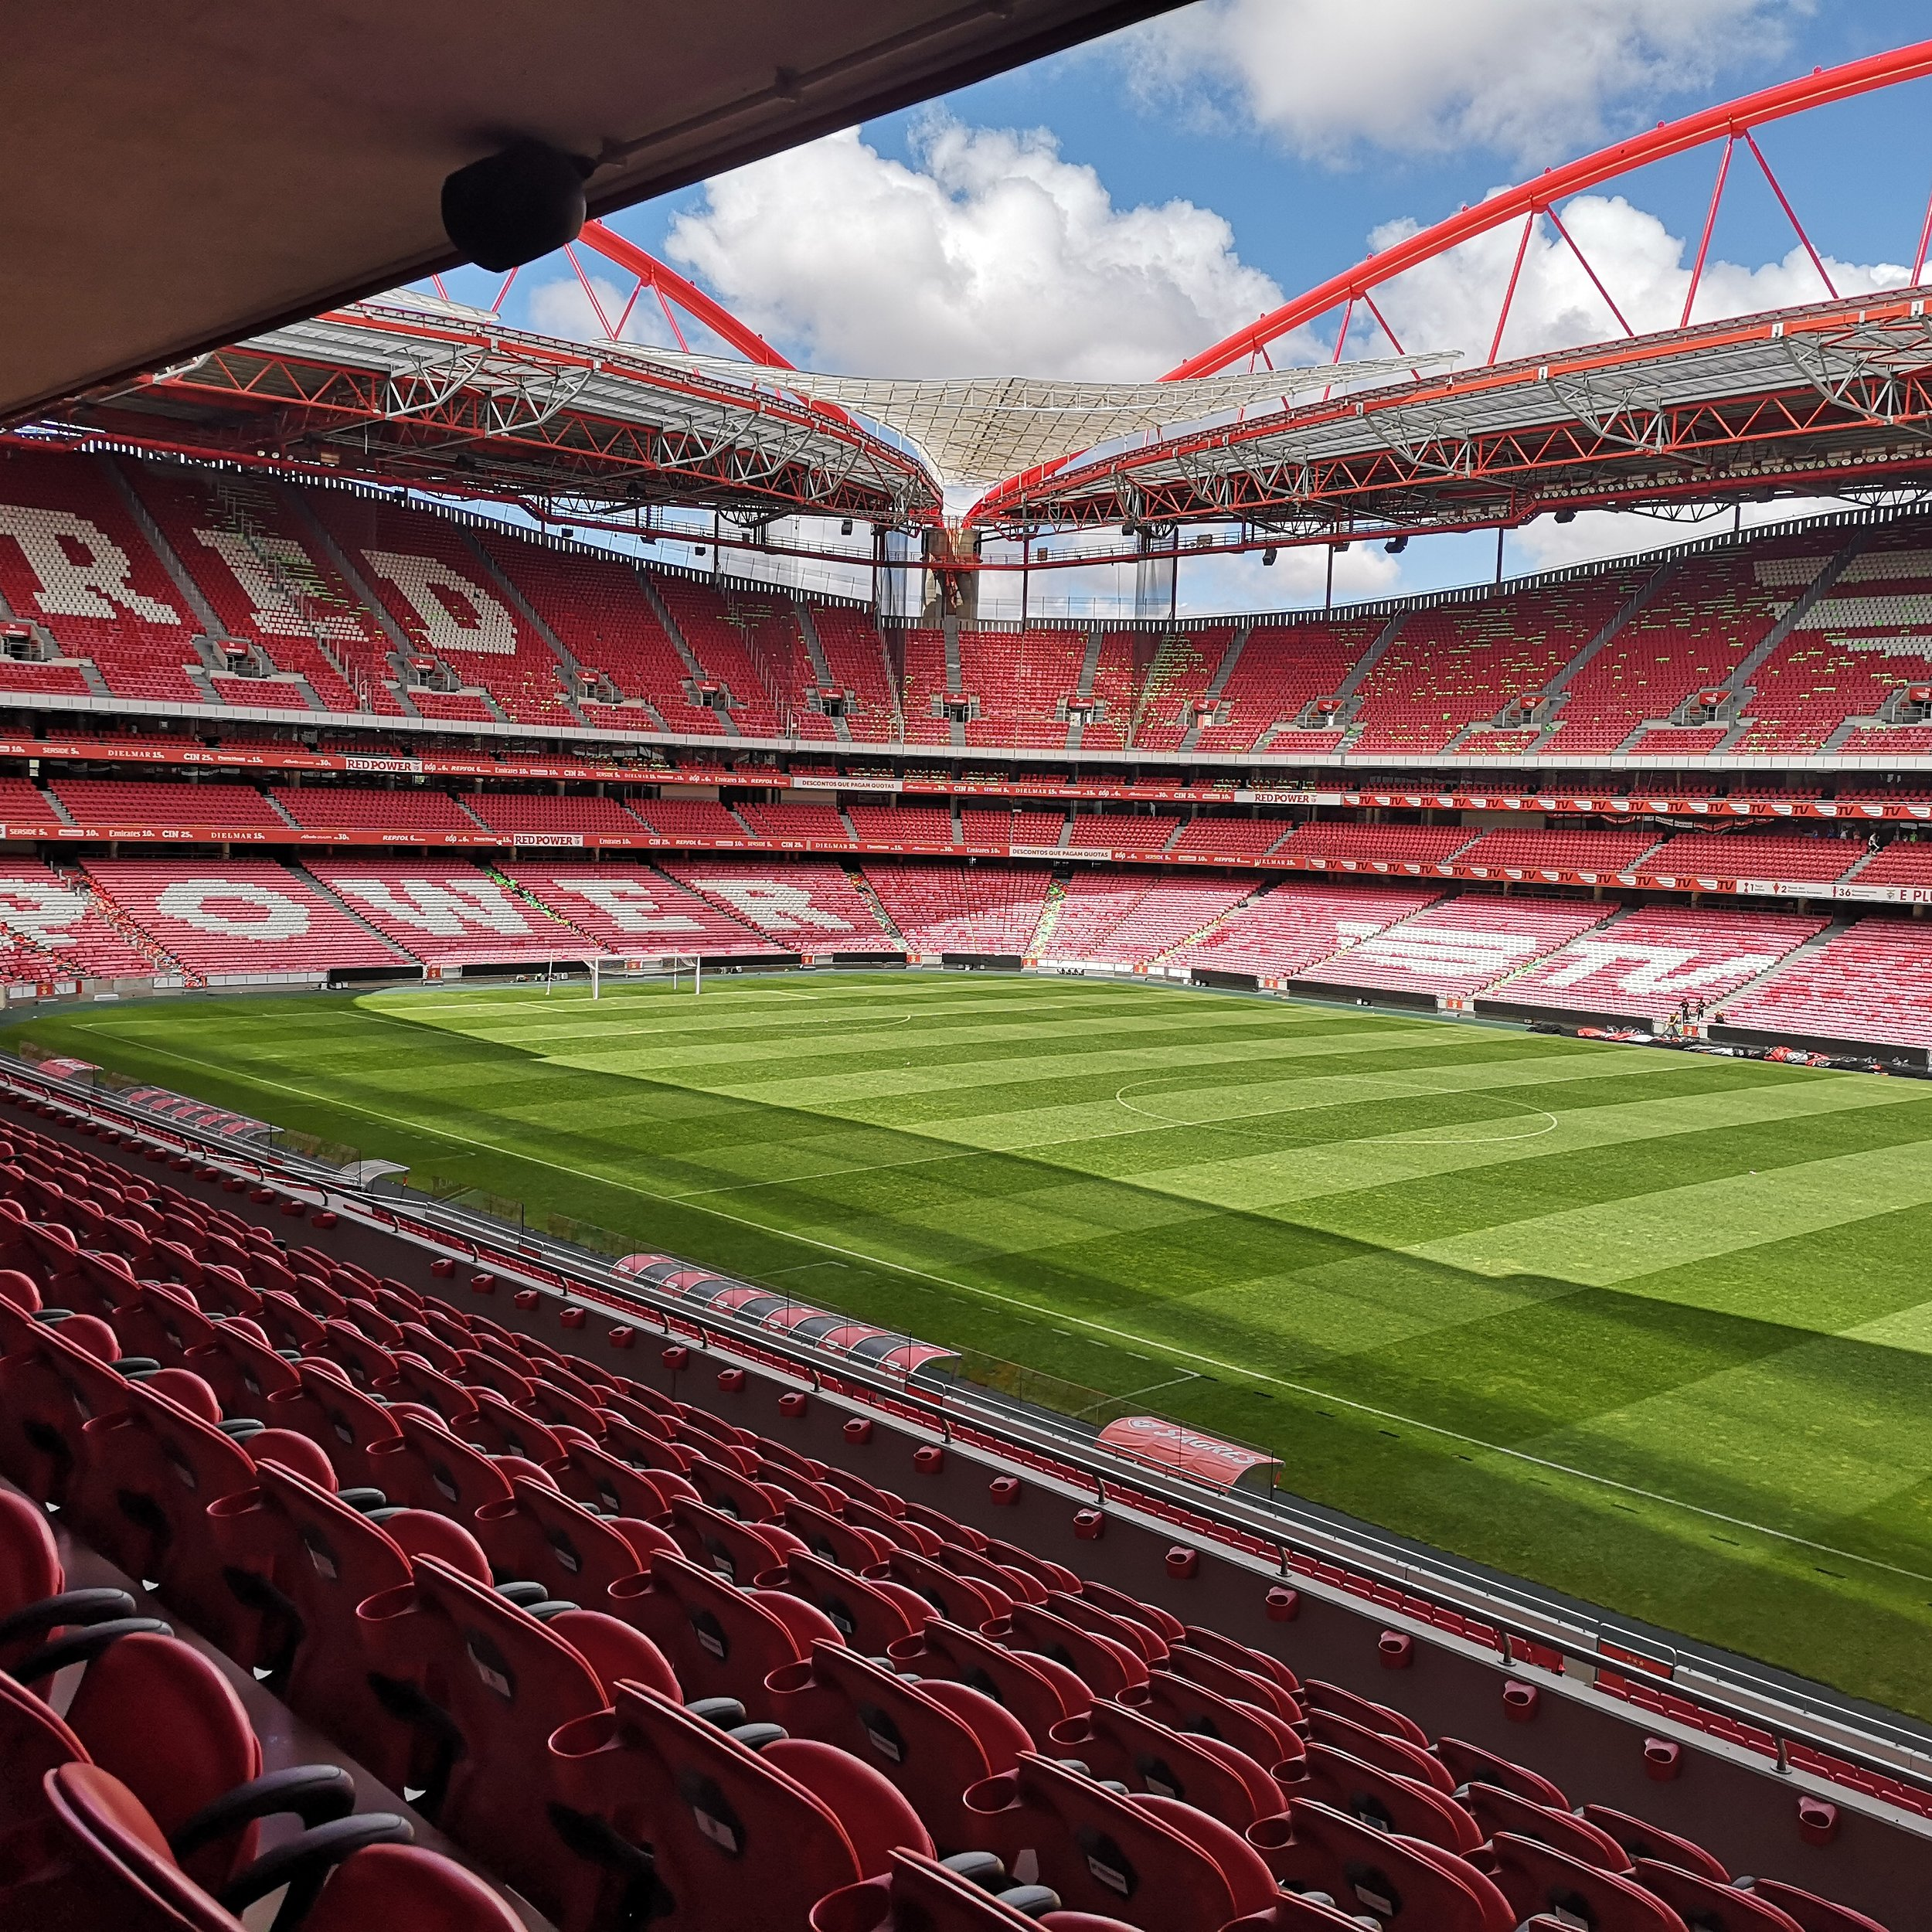 The Estadio da Luz, Lisbon